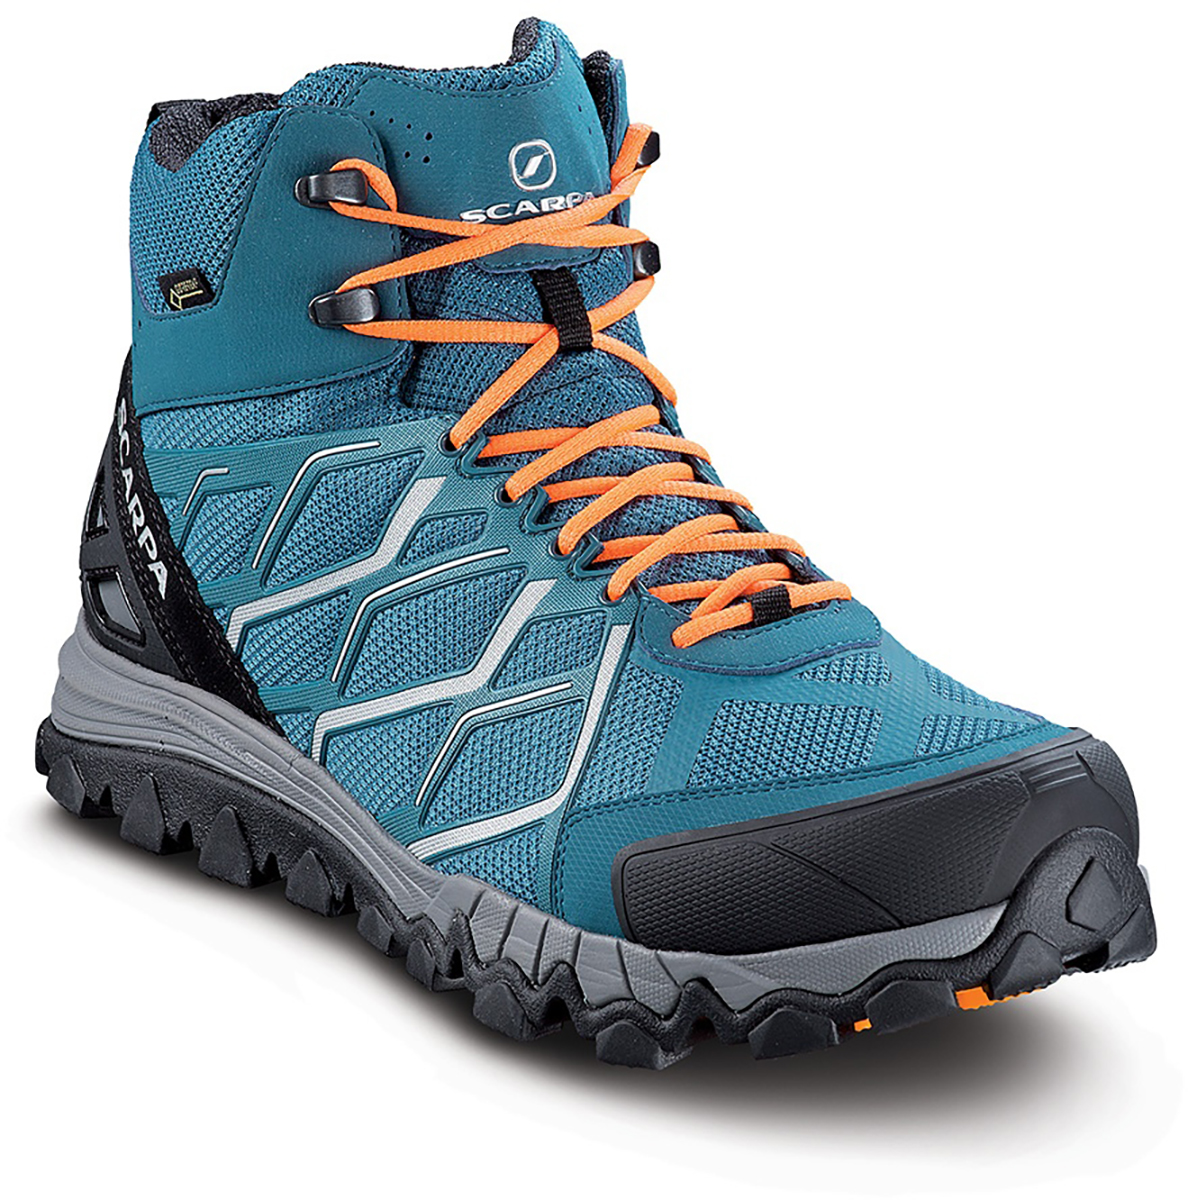 Scarpa Nitro Hike GTX Boot | Running shoes